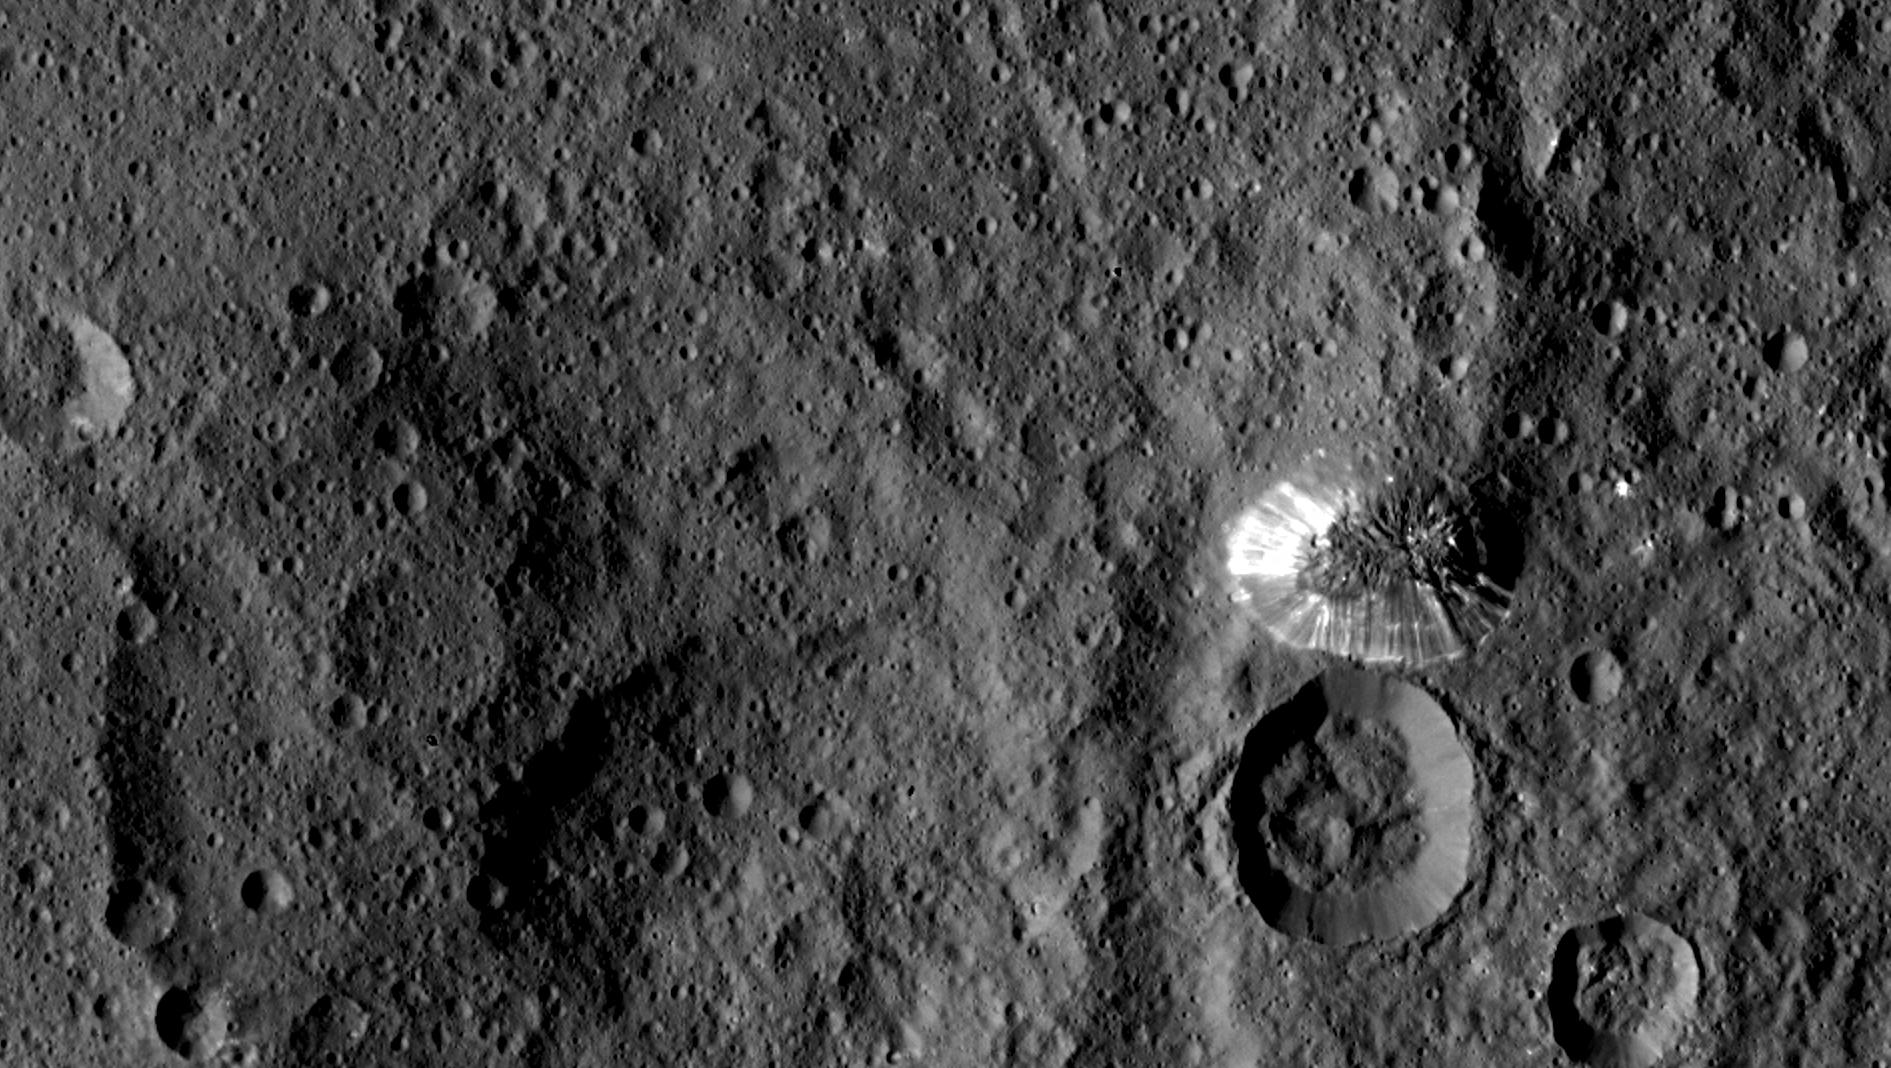 Dawn spotted this conical mountain in Ceres' southern hemisphere. Credit: NASA/JPL-Caltech/UCLA/MPS/DLR/IDA